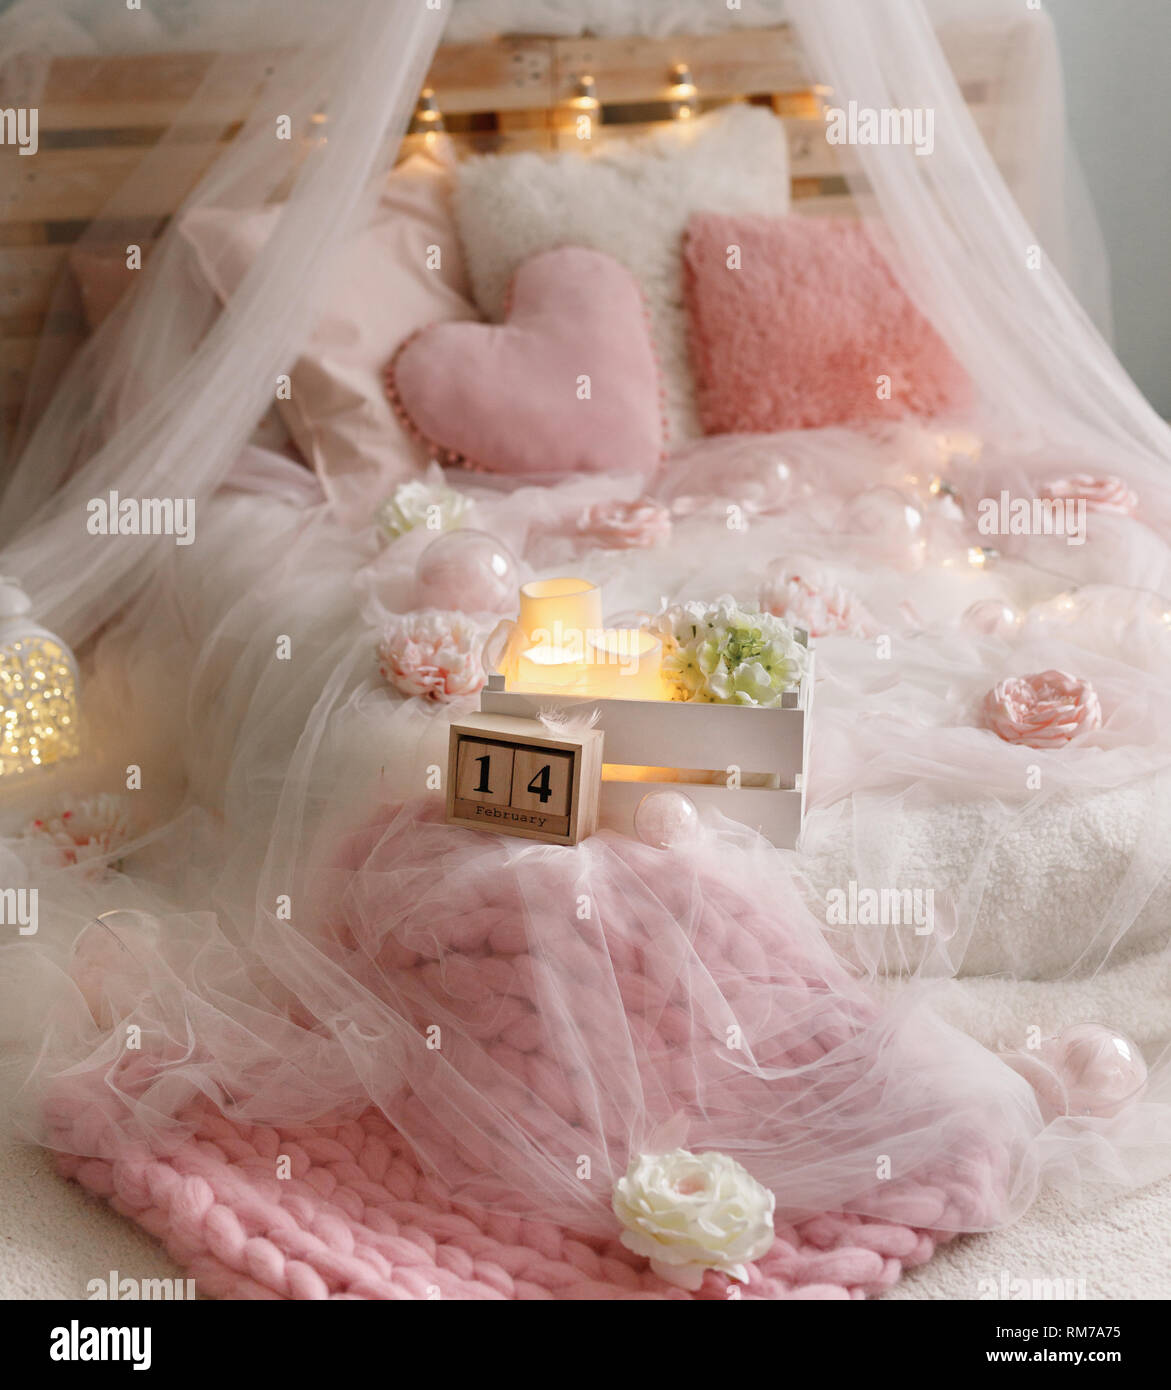 rose bed with flowers on 14 th of february - Stock Image